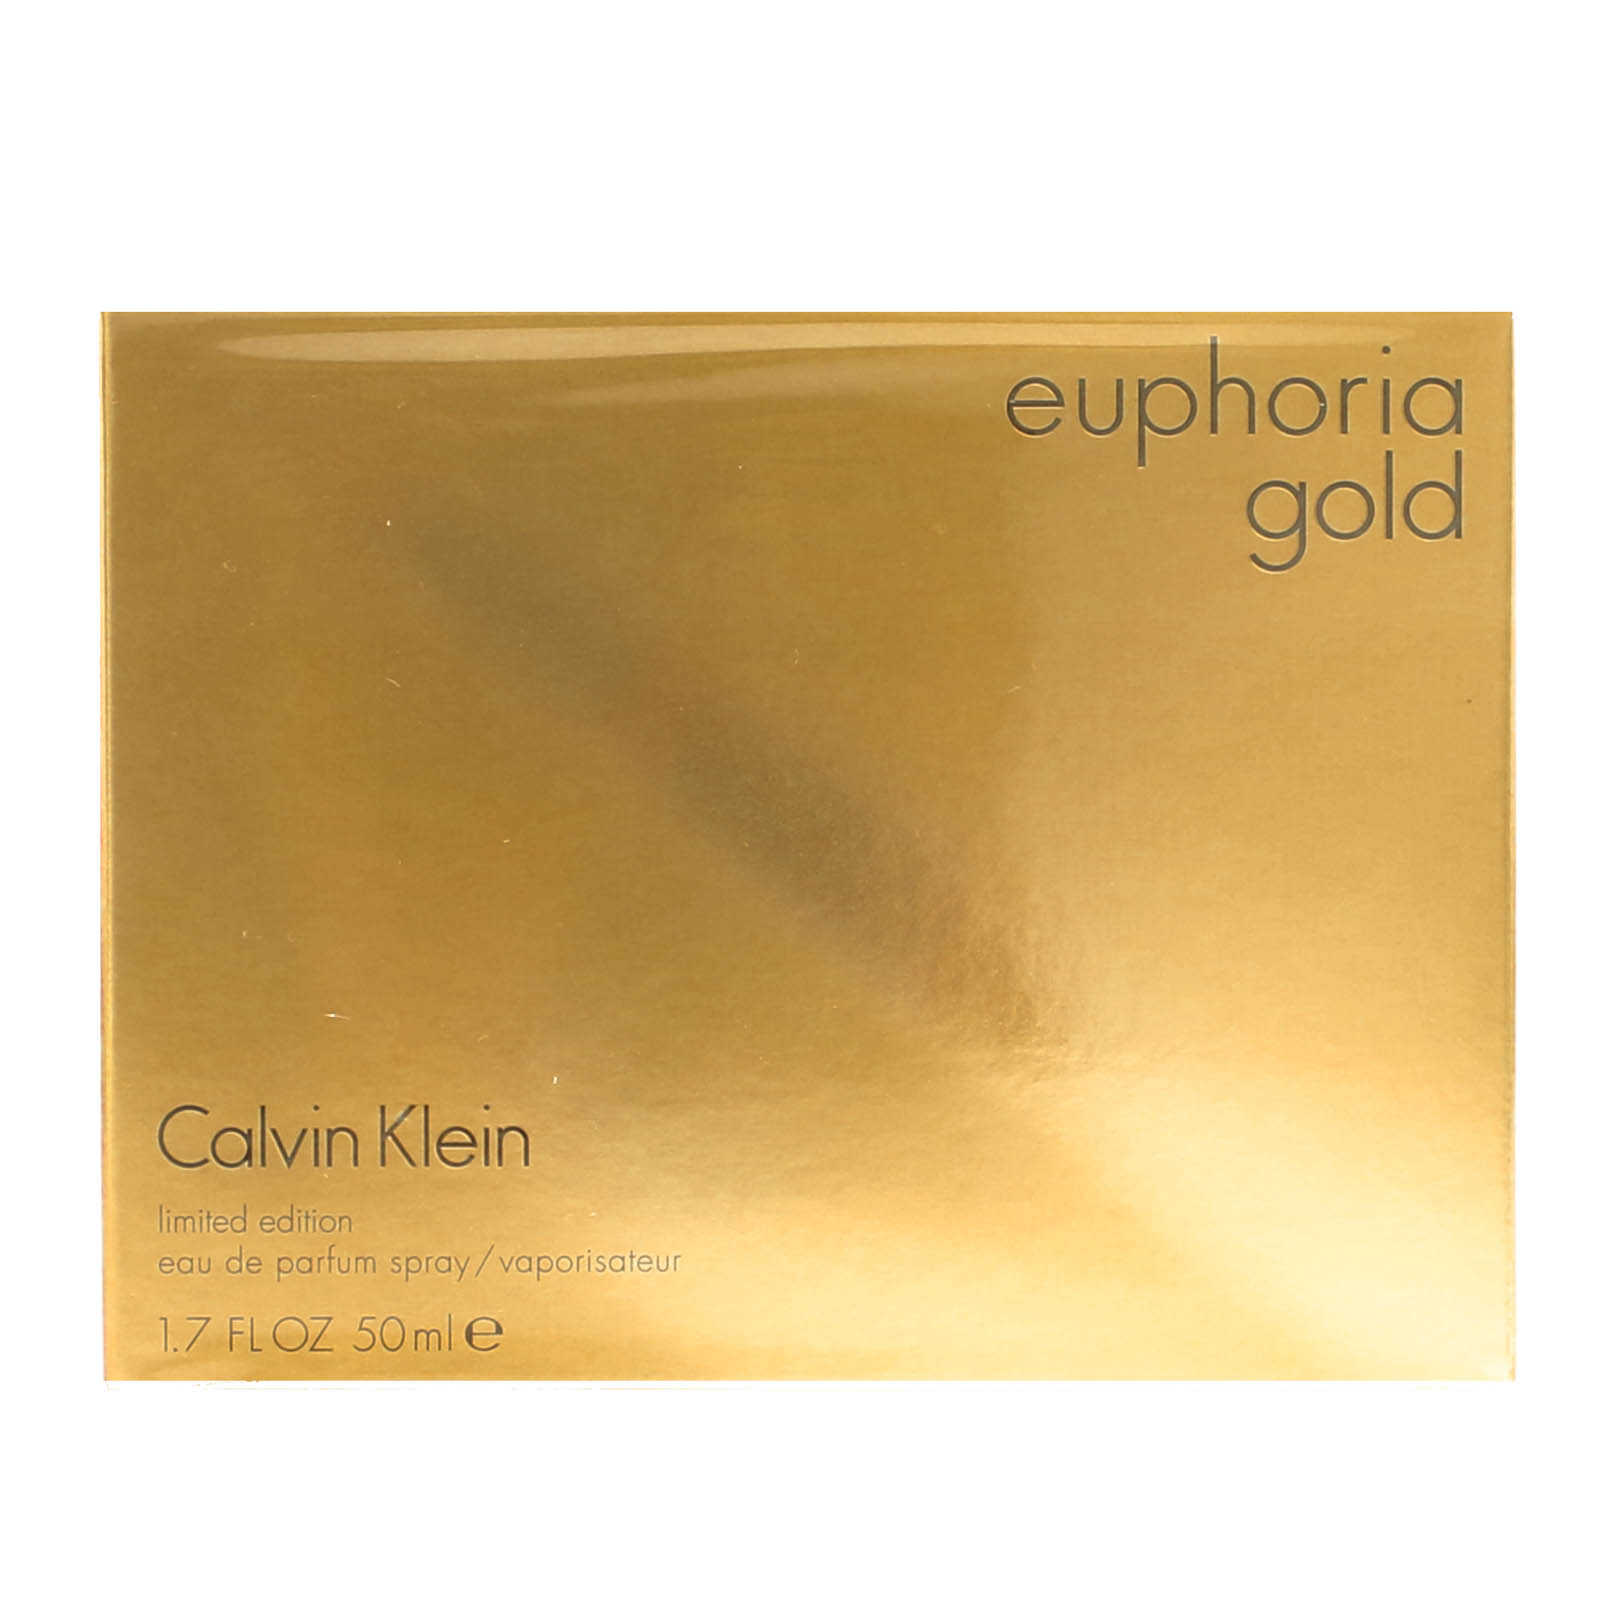 428fa7f89 Details about EUPHORIA GOLD by Calvin Klein 1.7 oz. edp Perfume for Women    New In Box